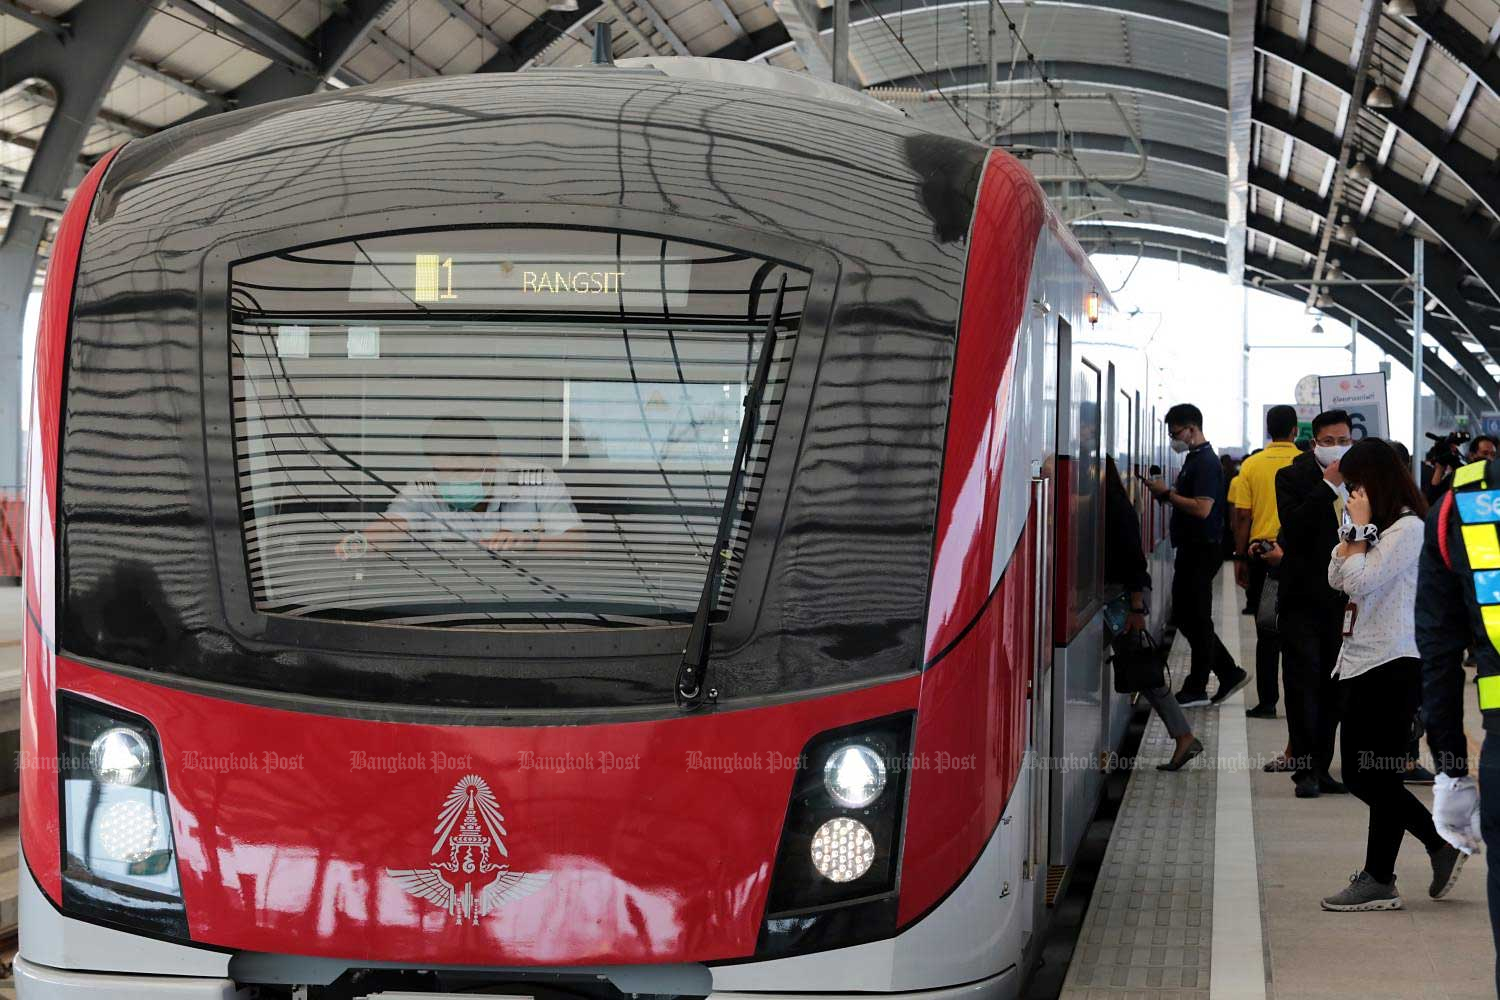 The State Railway of Thailand (SRT) conducts a test ride of the Red Line's Bang Sue-Rangsit section from Bang Sue Grand station to Rangsit station. The SRT said both facilities are scheduled to open to the public this year.(Photo by Chanat Katanyu)